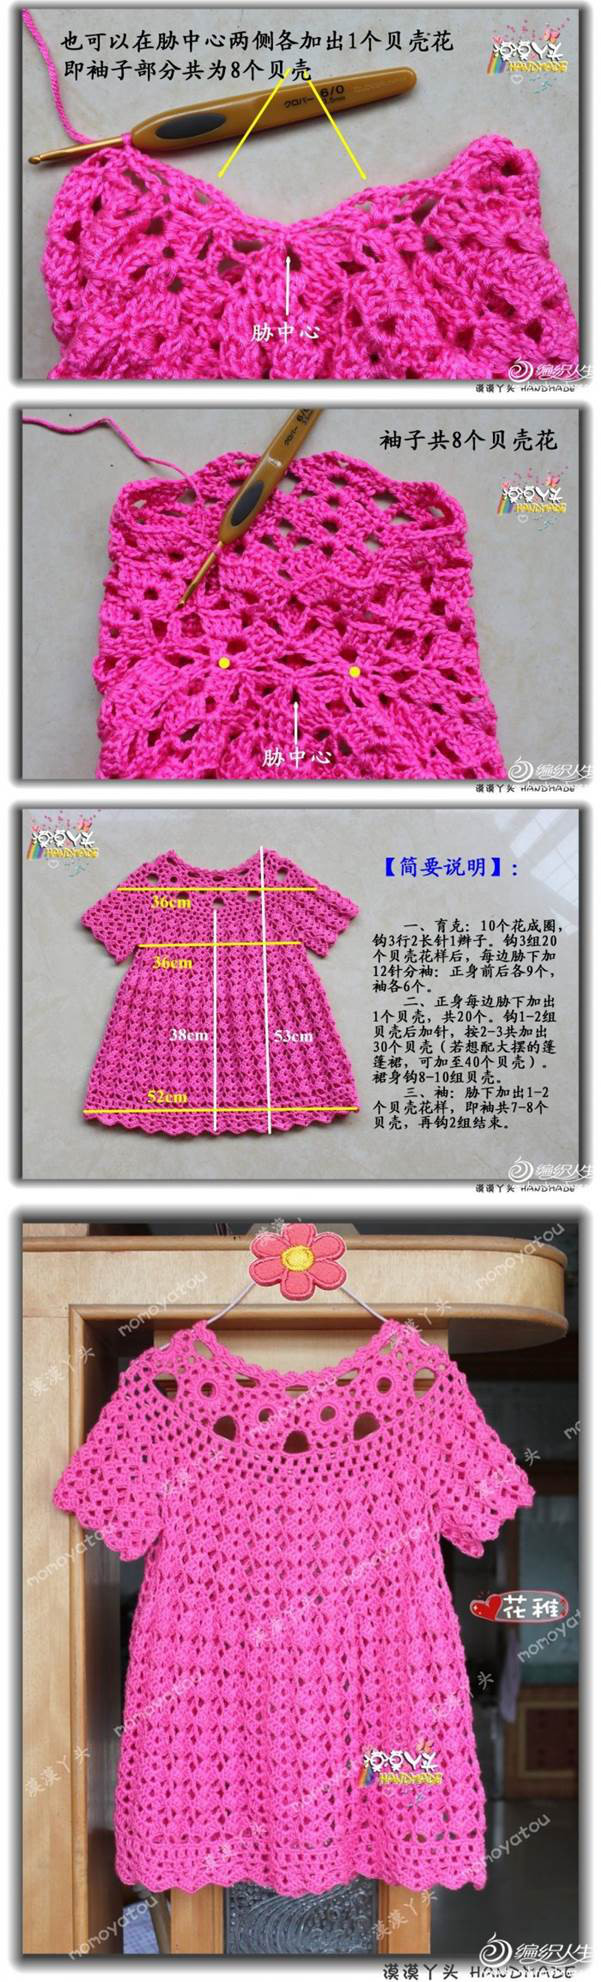 DIY-Beautiful-Crochet-Dress-00-08